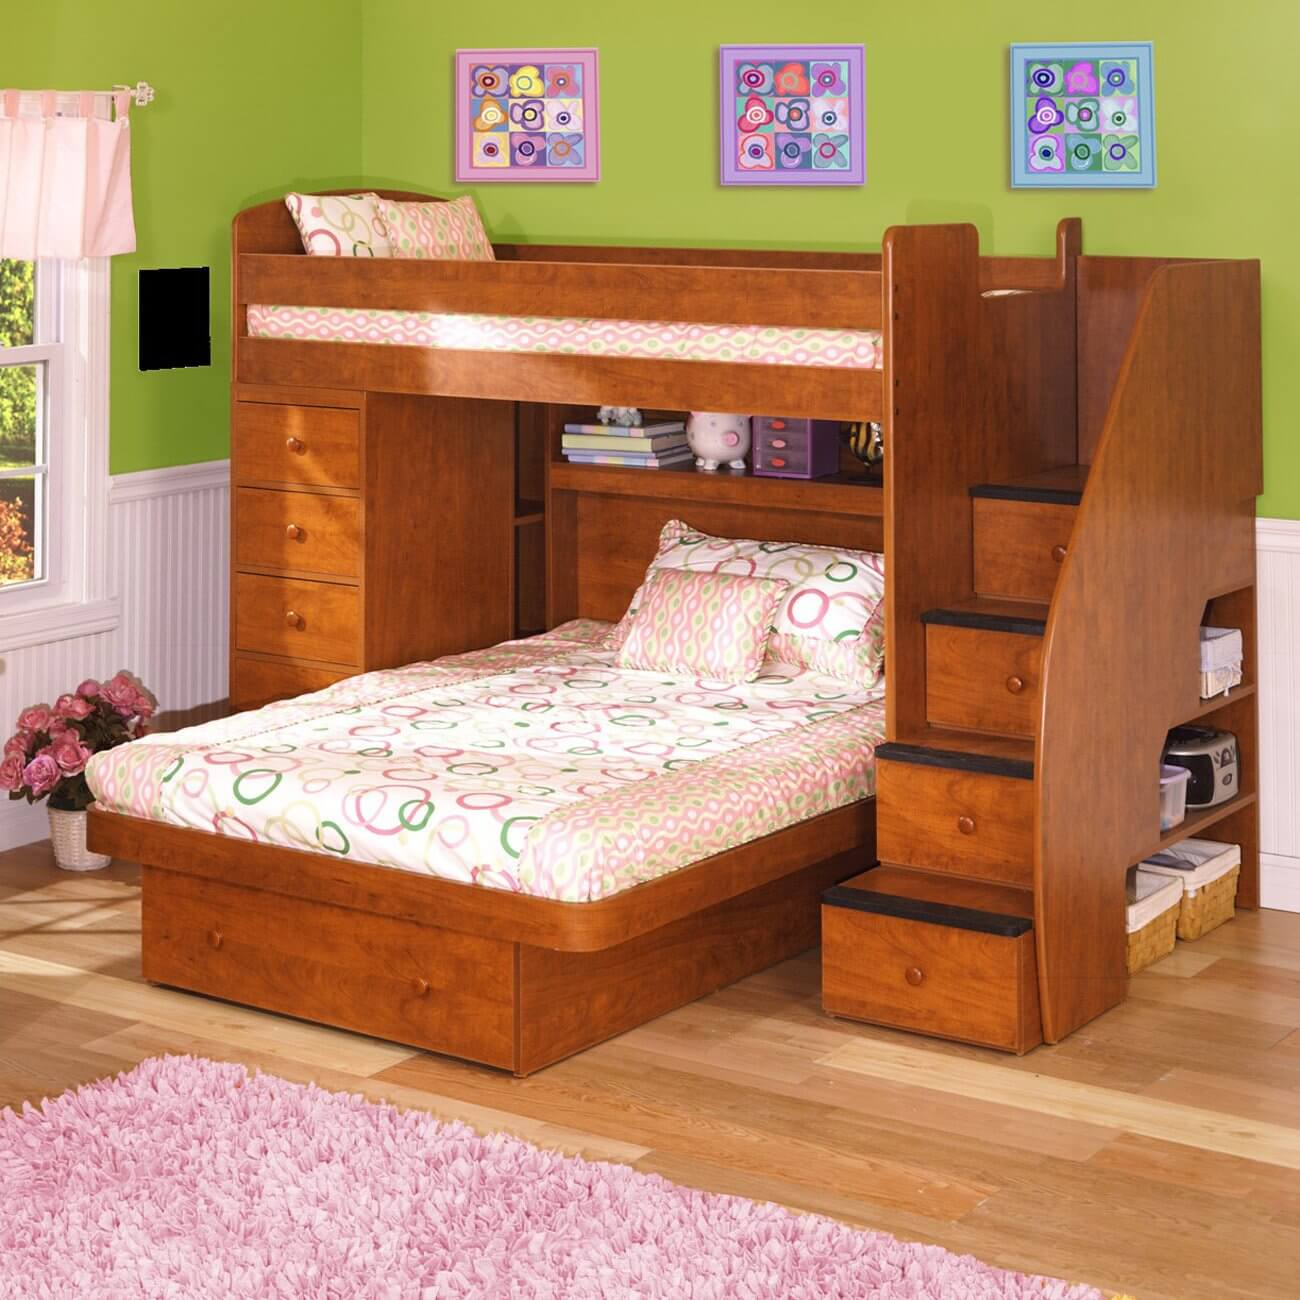 this engineered wood l shaped bunk is a twin over full size bed the